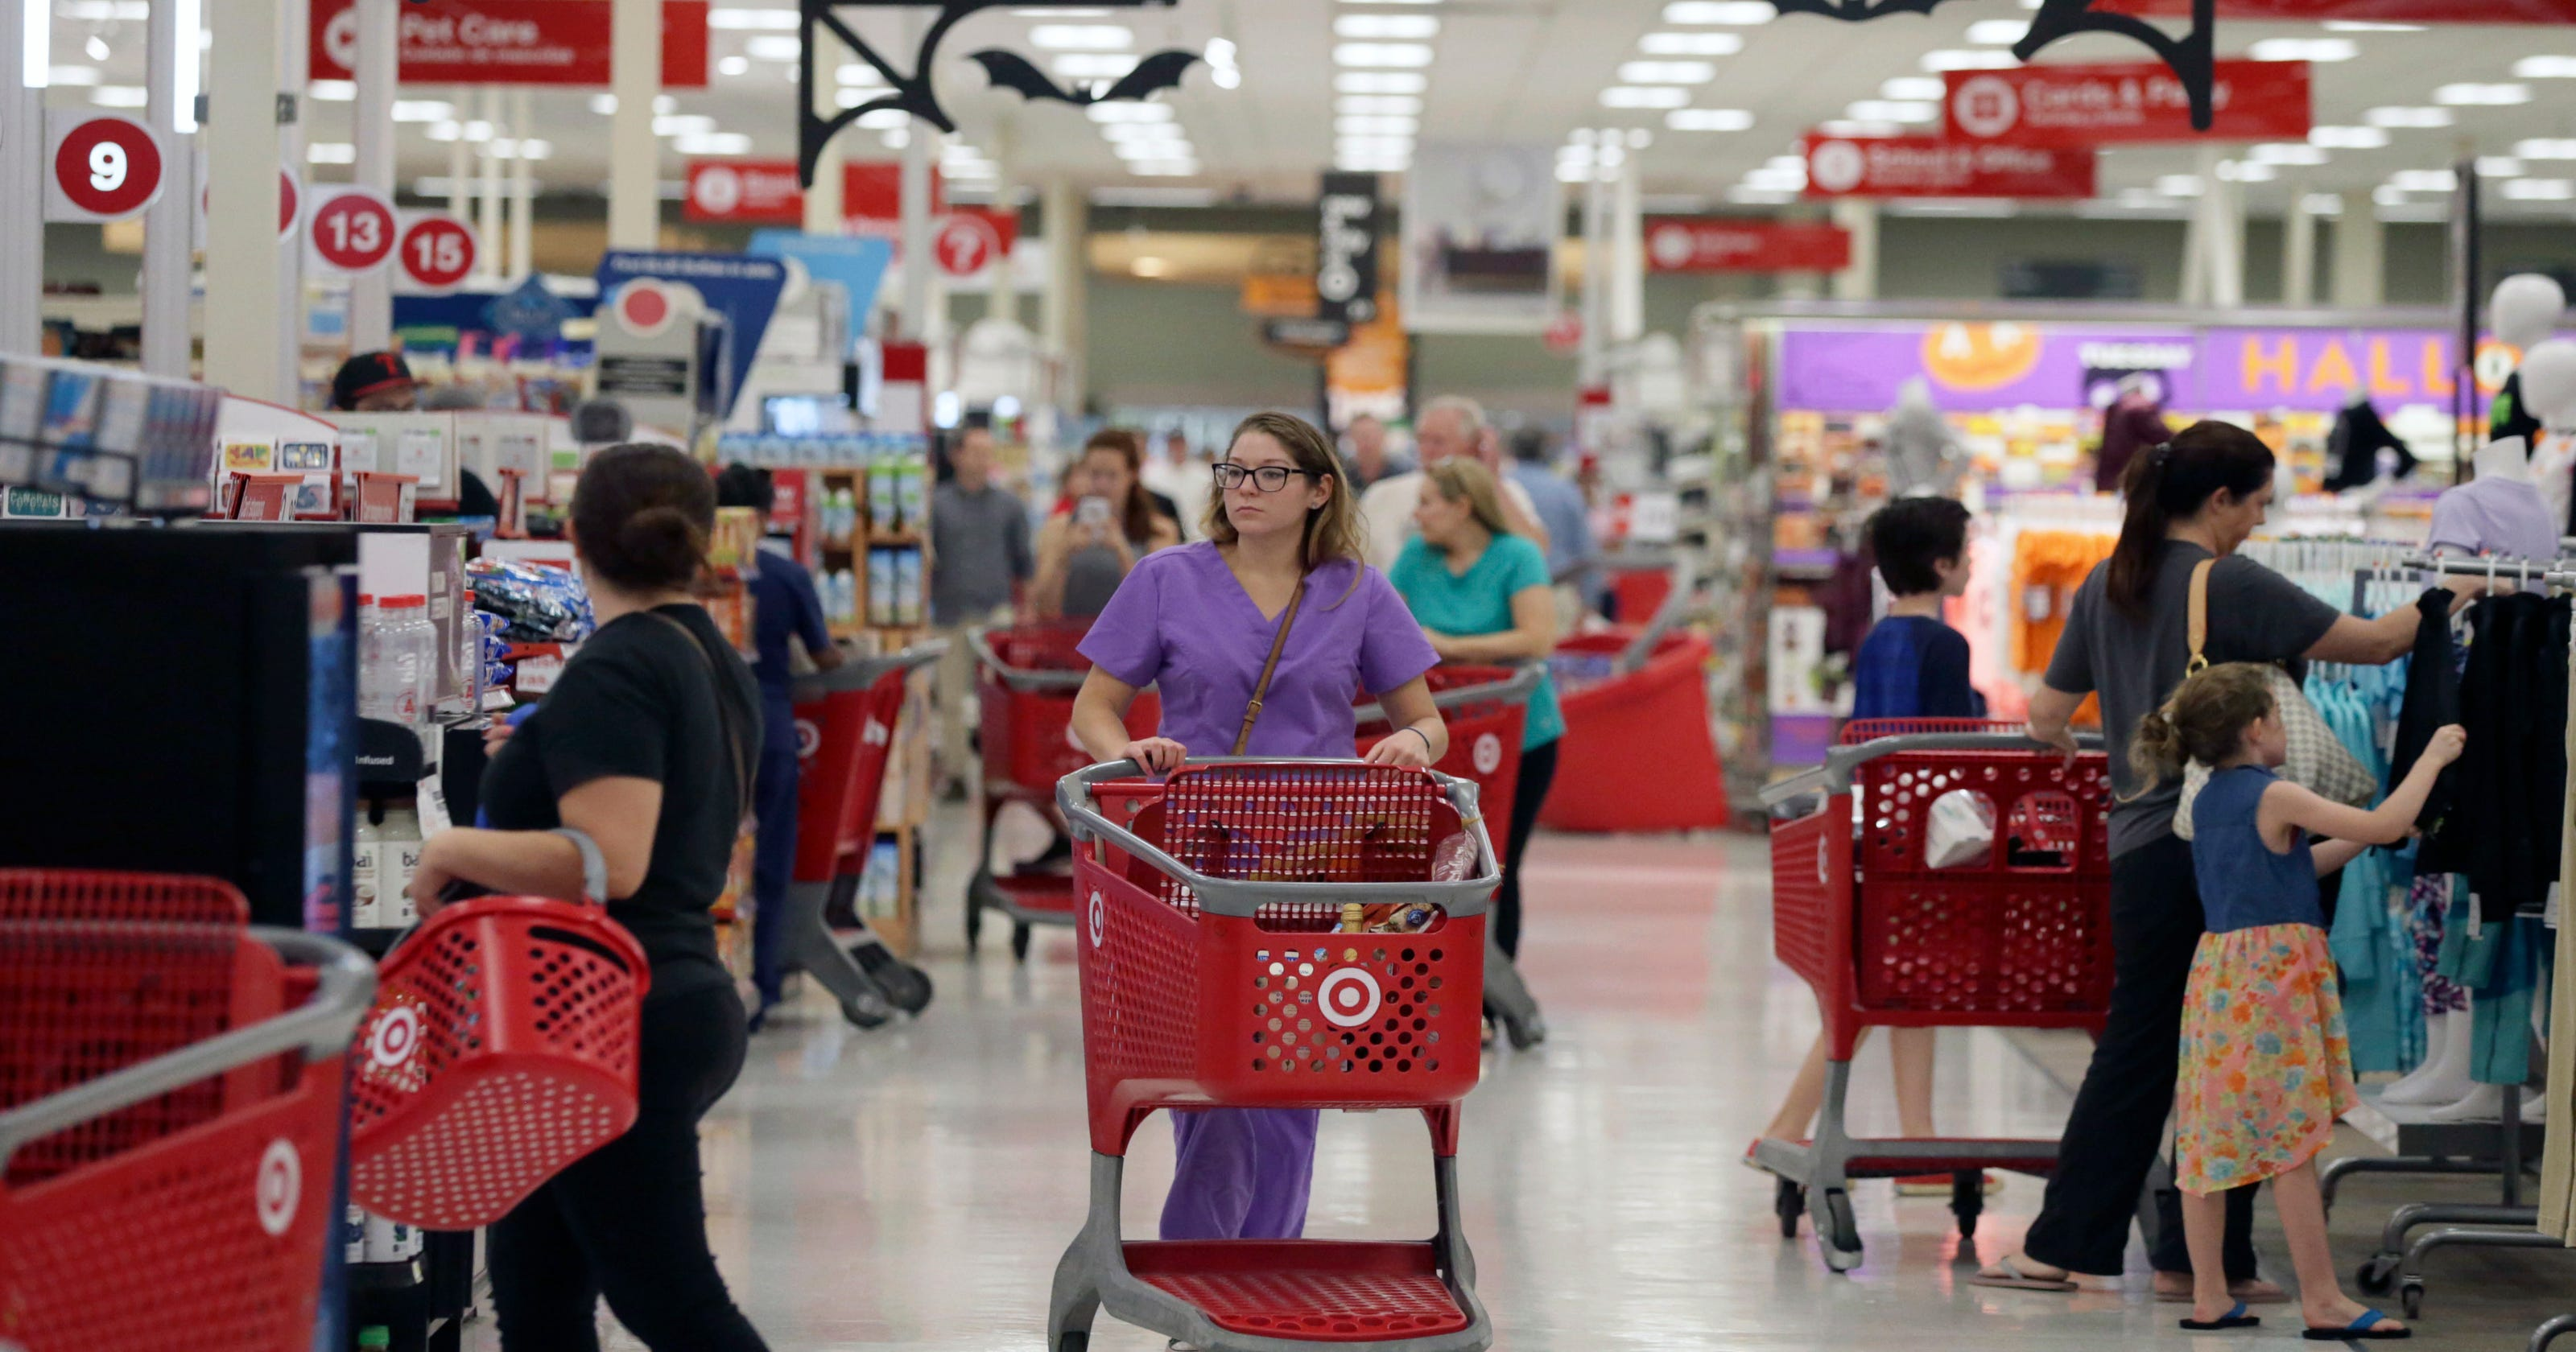 Colorado Target stores add home delivery, 800 jobs through new service